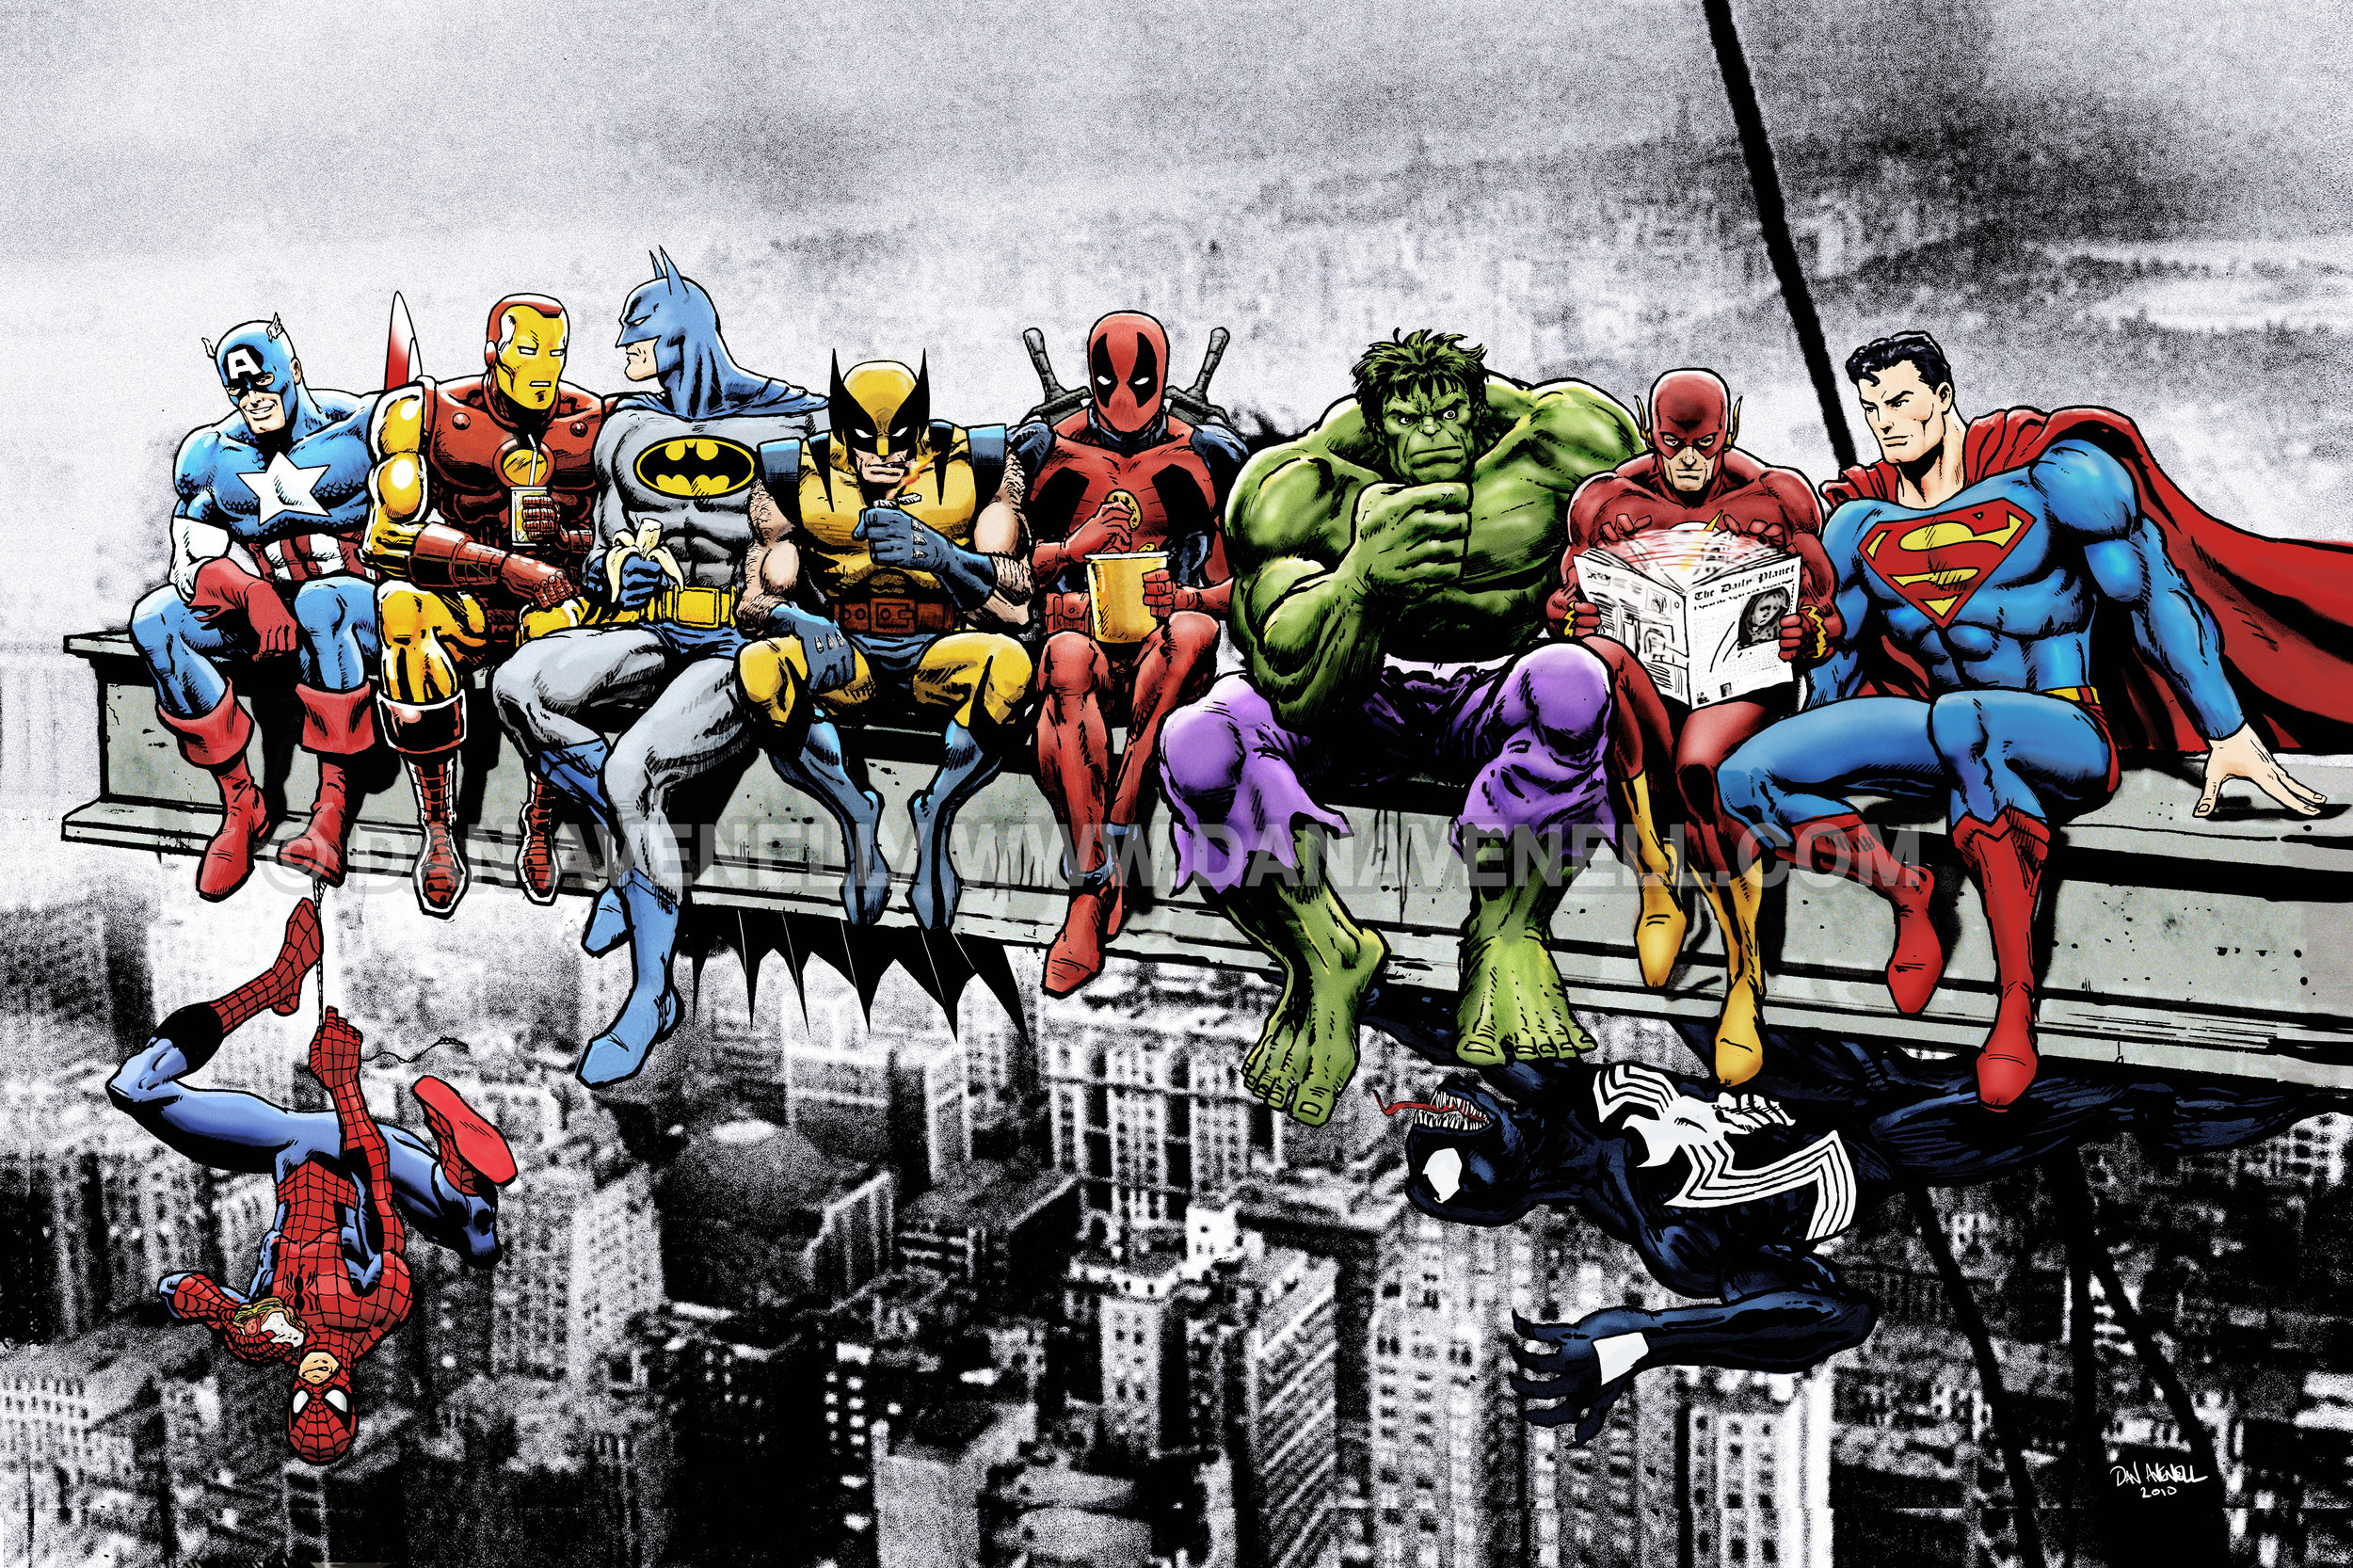 Marvel & DC Superheroes Lunch Atop A Skyscraper